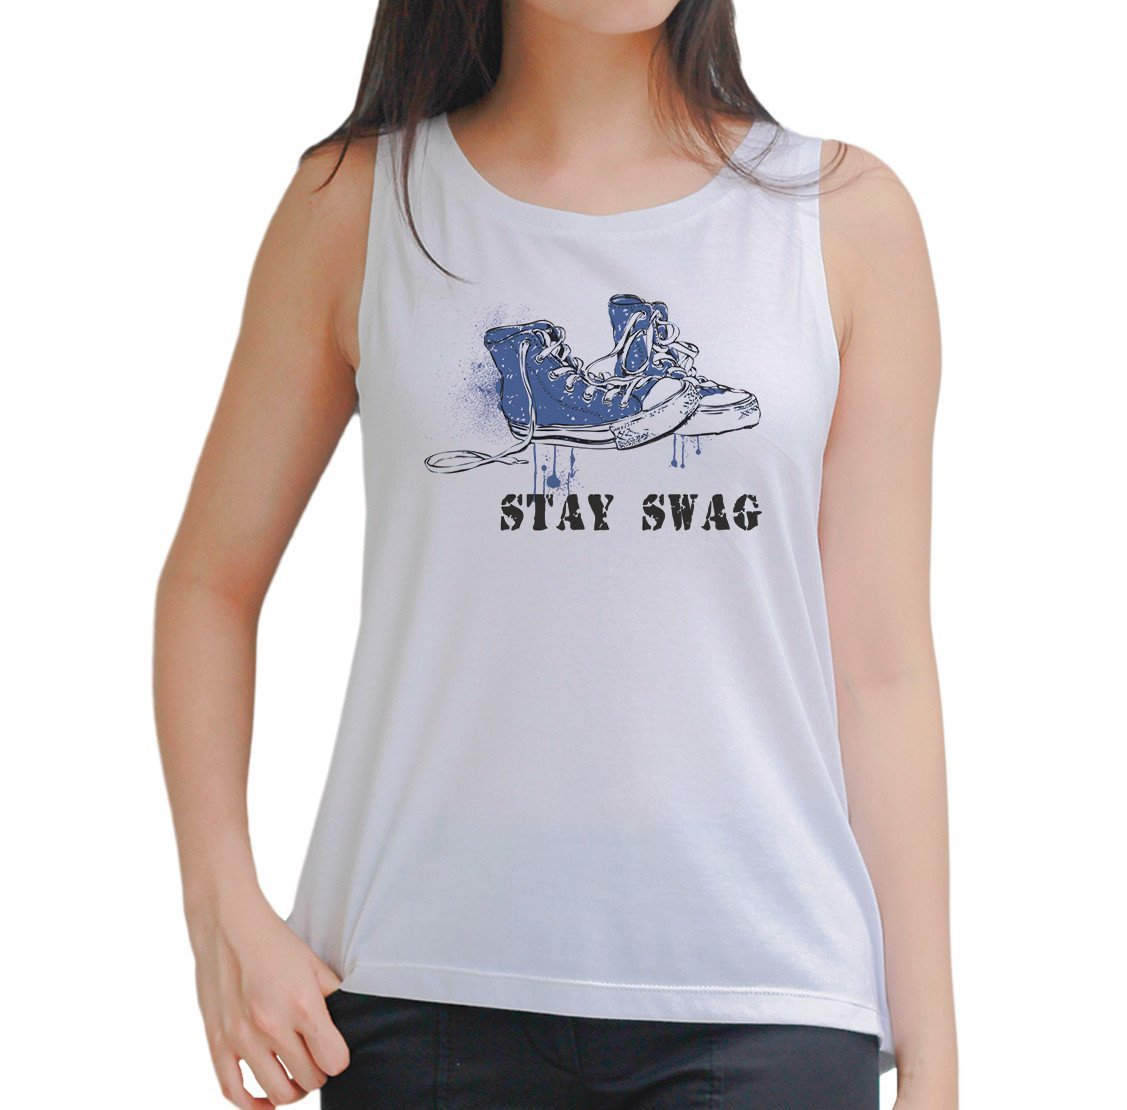 Stay swag Tank Top